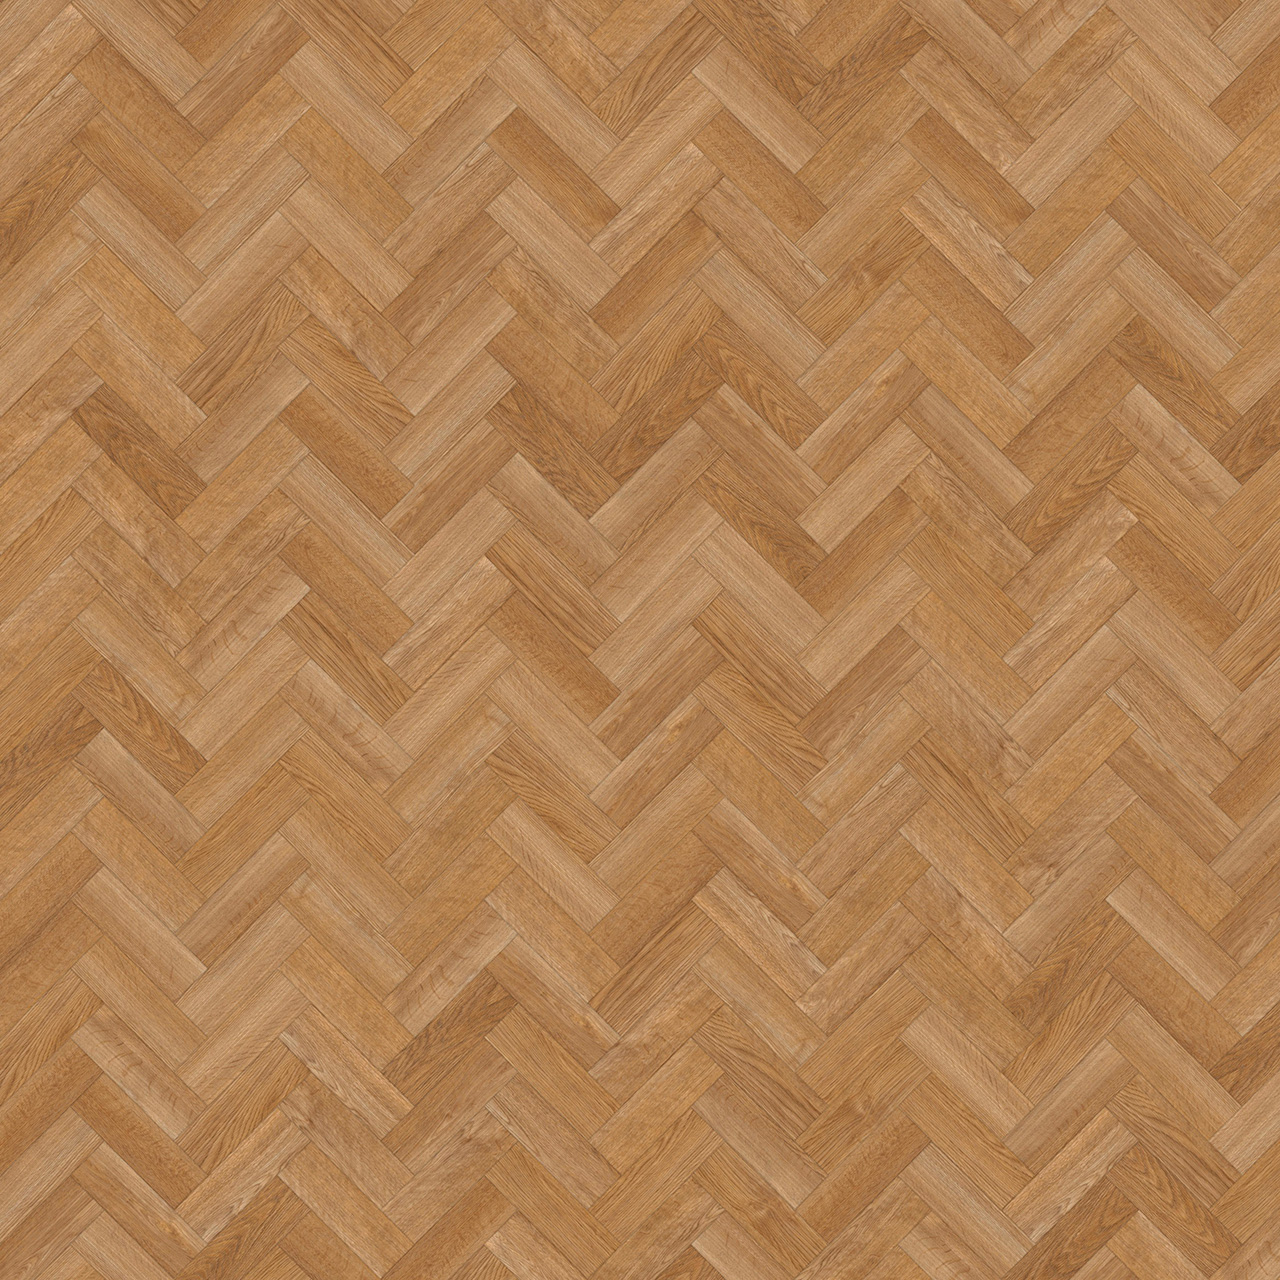 The Classic A Beautiful Small Parquet Design Floor In